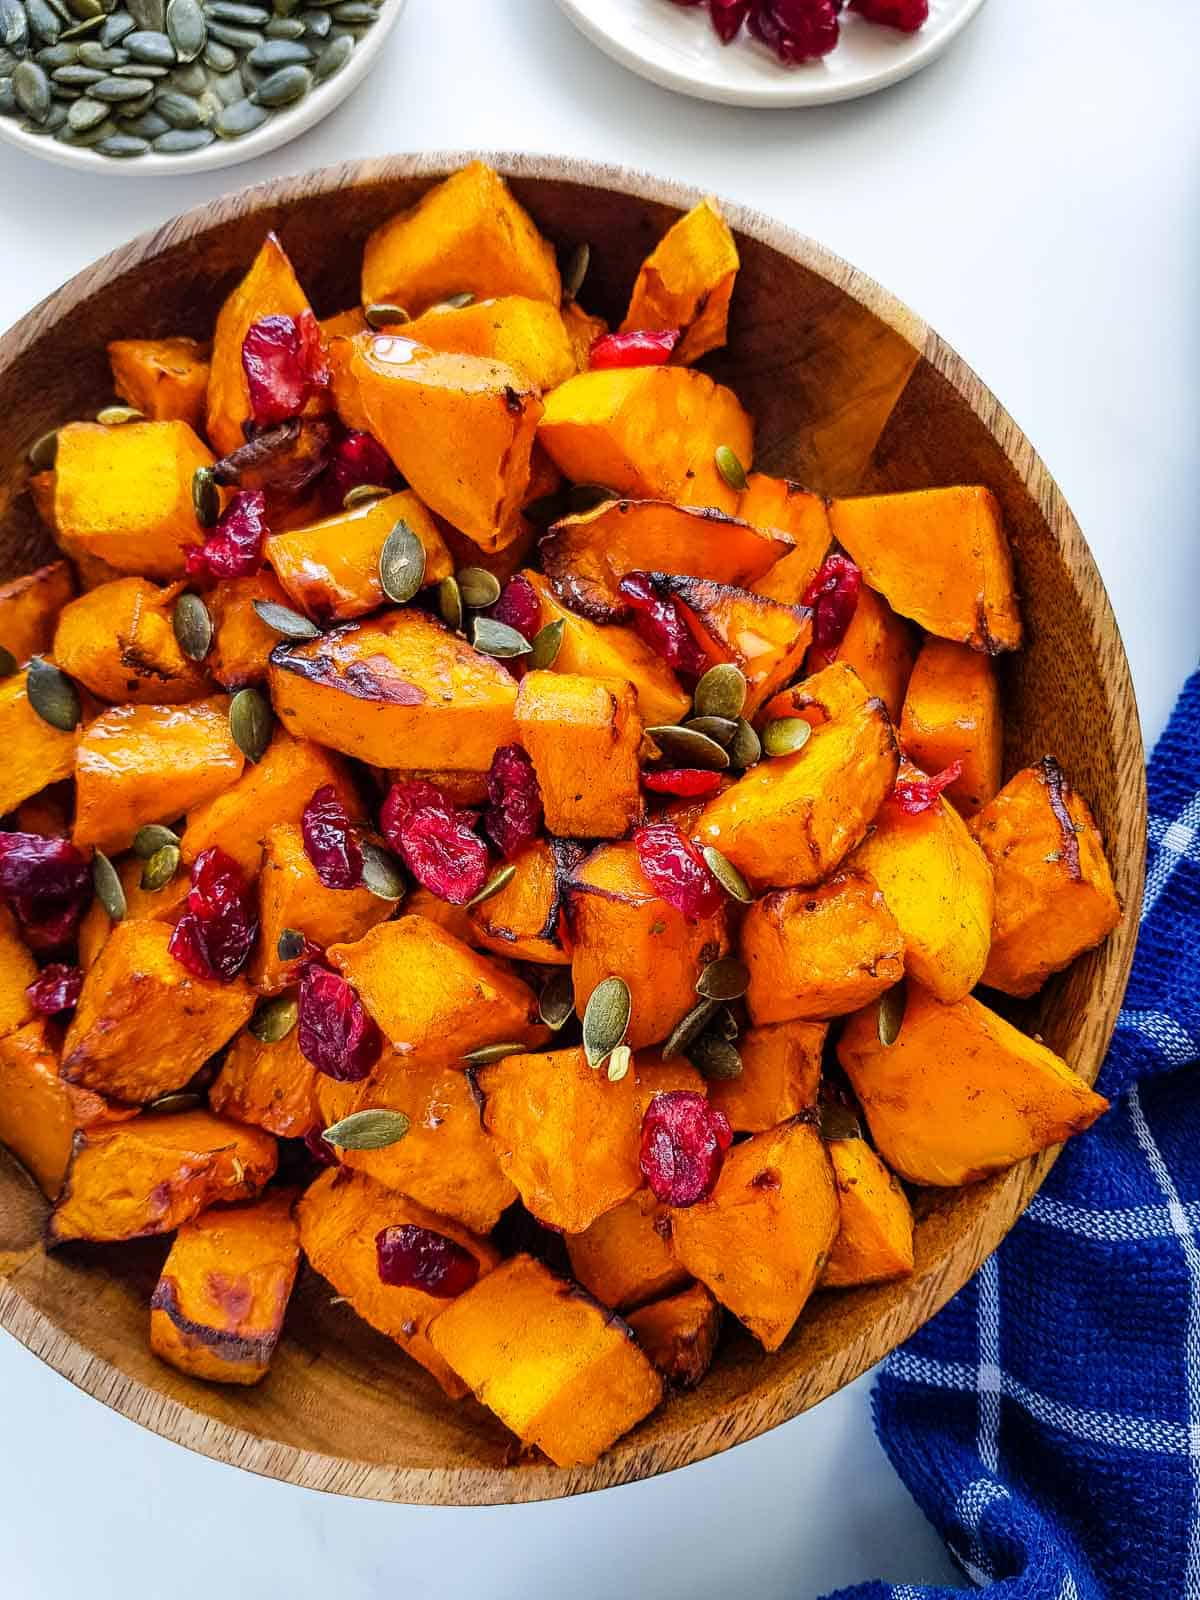 Roasted butternut squash with cranberries and pumpkin seeds.